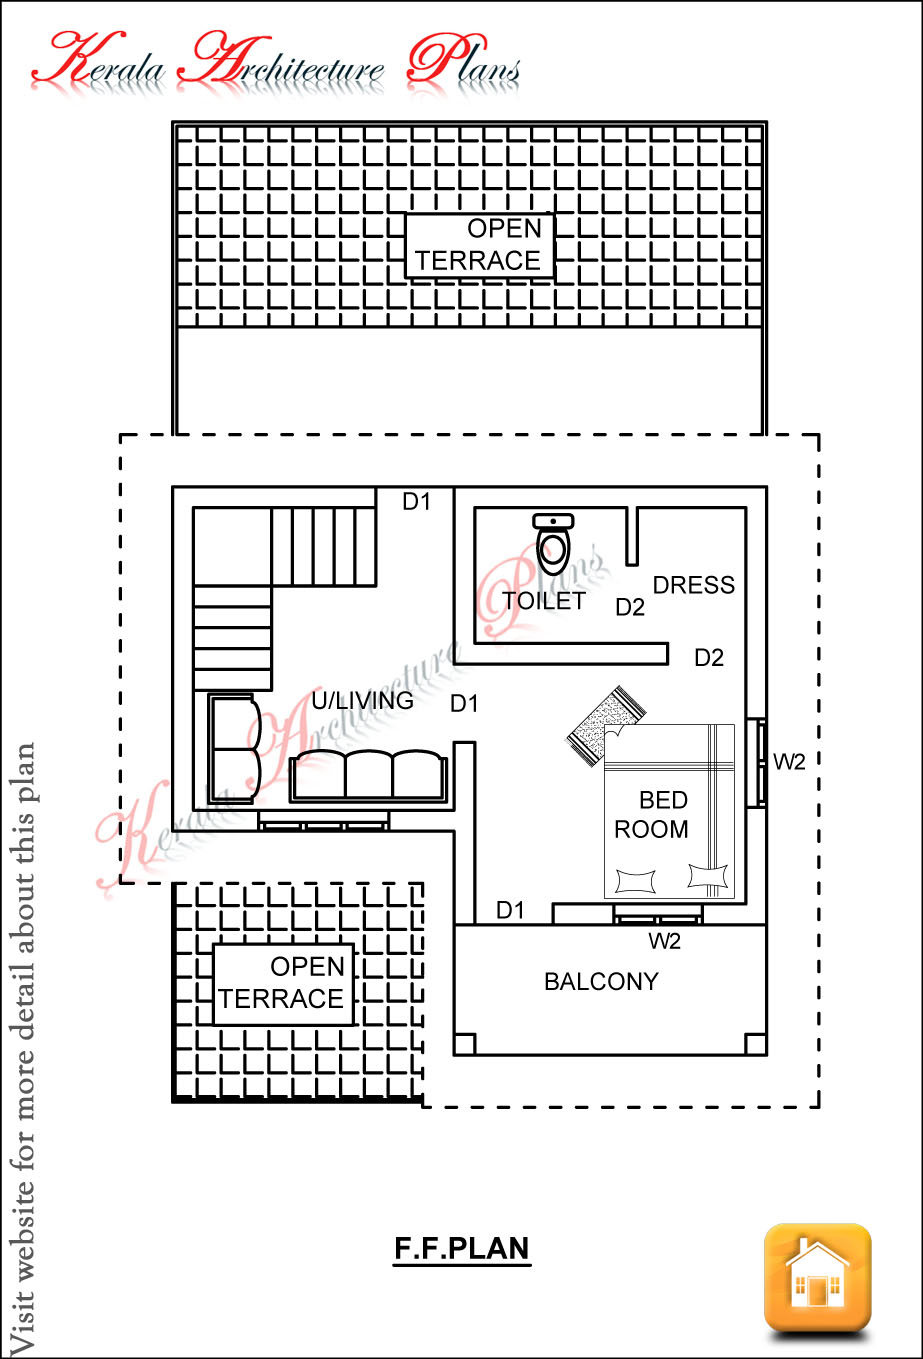 Three Bedrooms In 1200 Square Feet Everyone Will Like